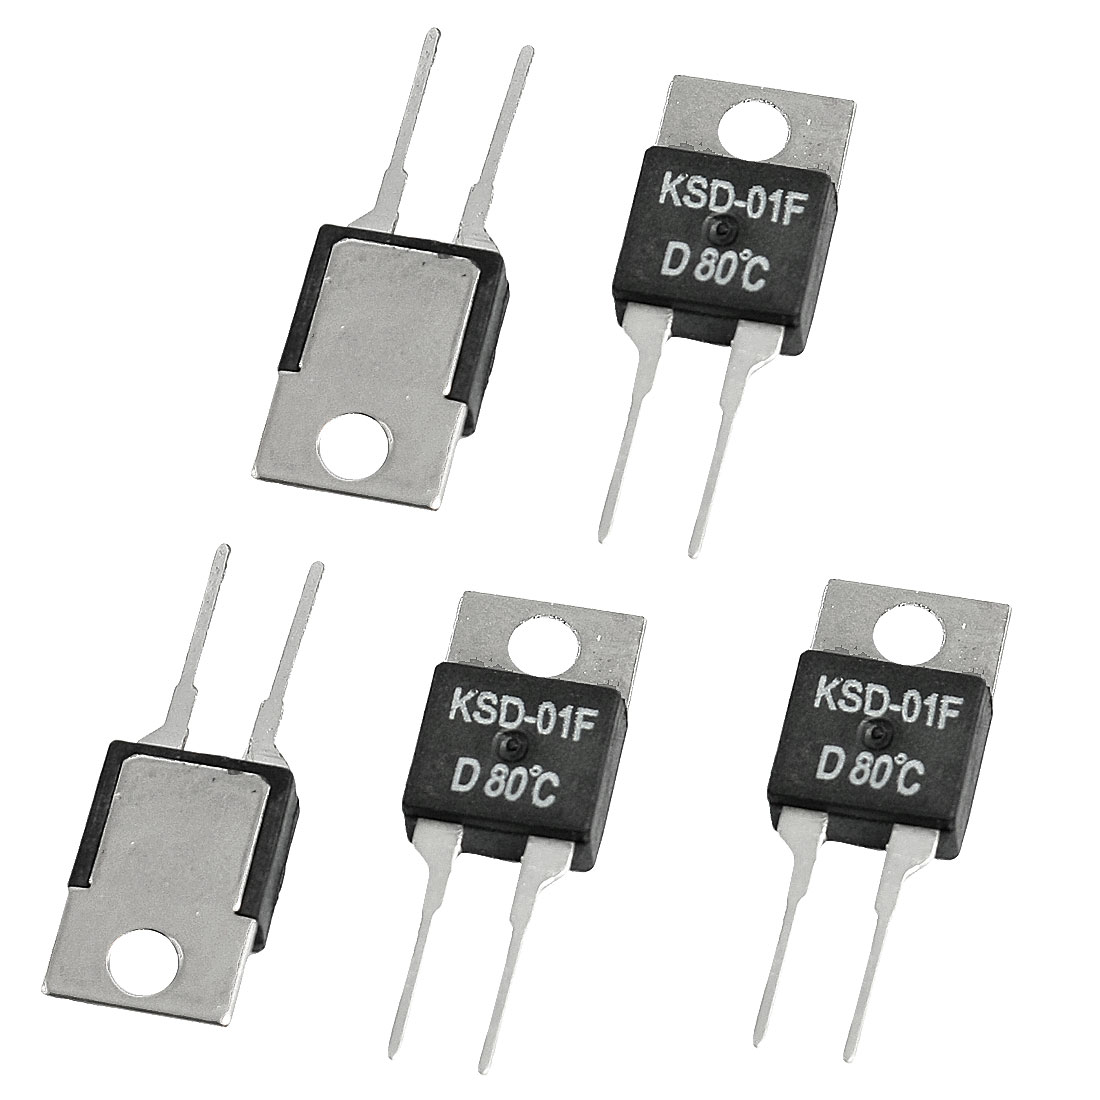 5 x KSD-01F 80 Celsius NC Temperature Switch Thermostat 1.5A 250VAC/ 24VDC